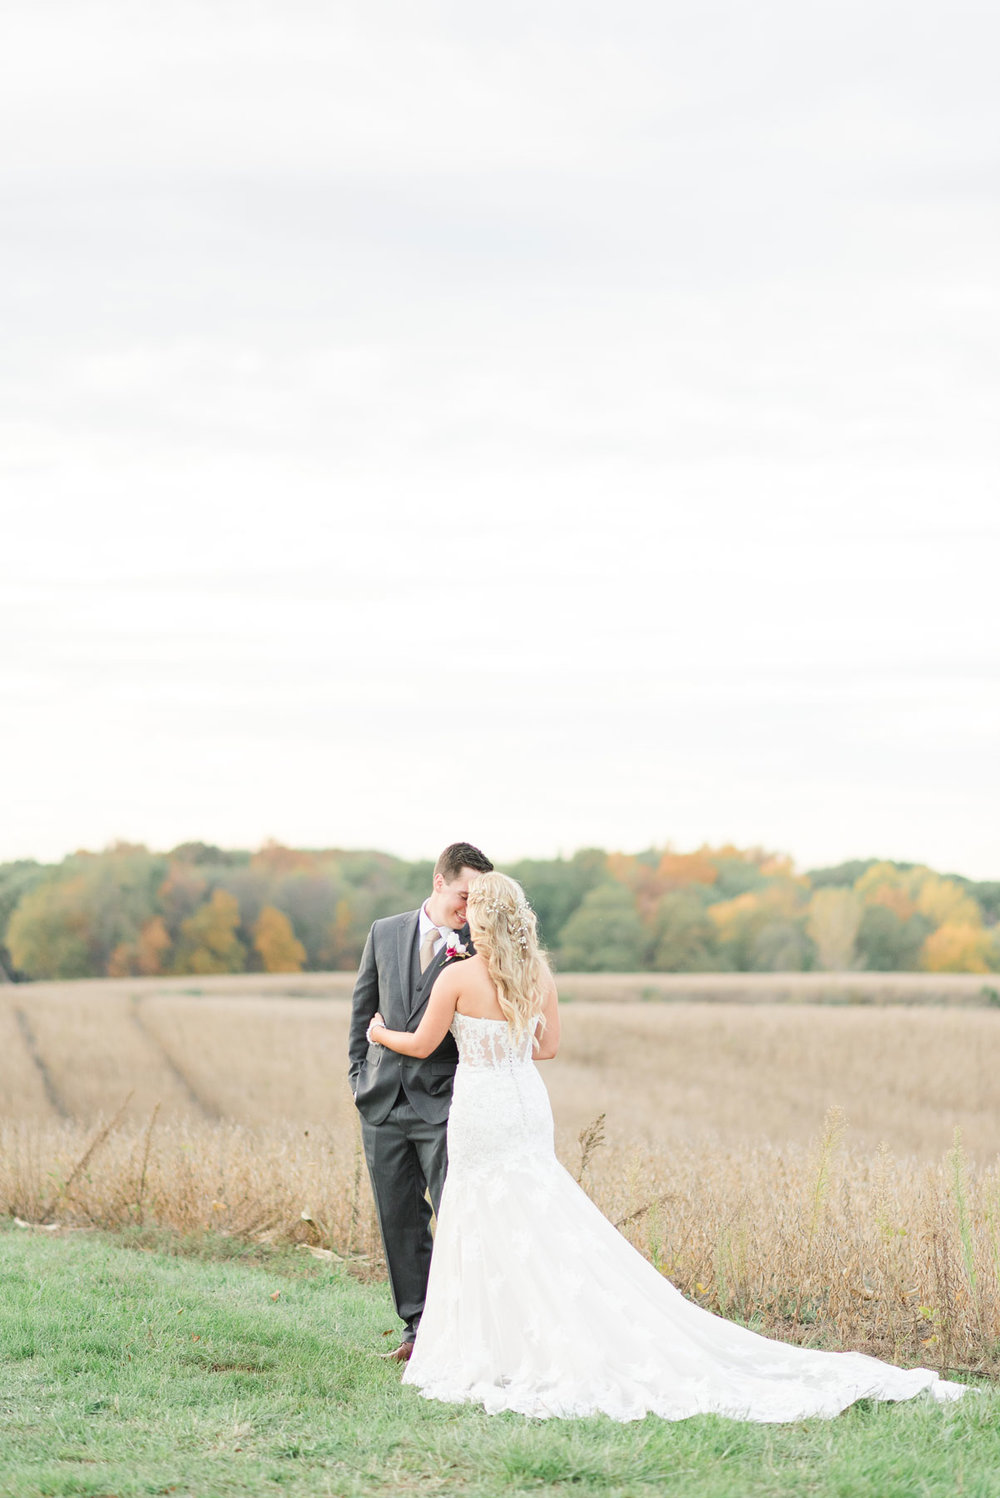 The Wedding Day Timeline | AC Photography